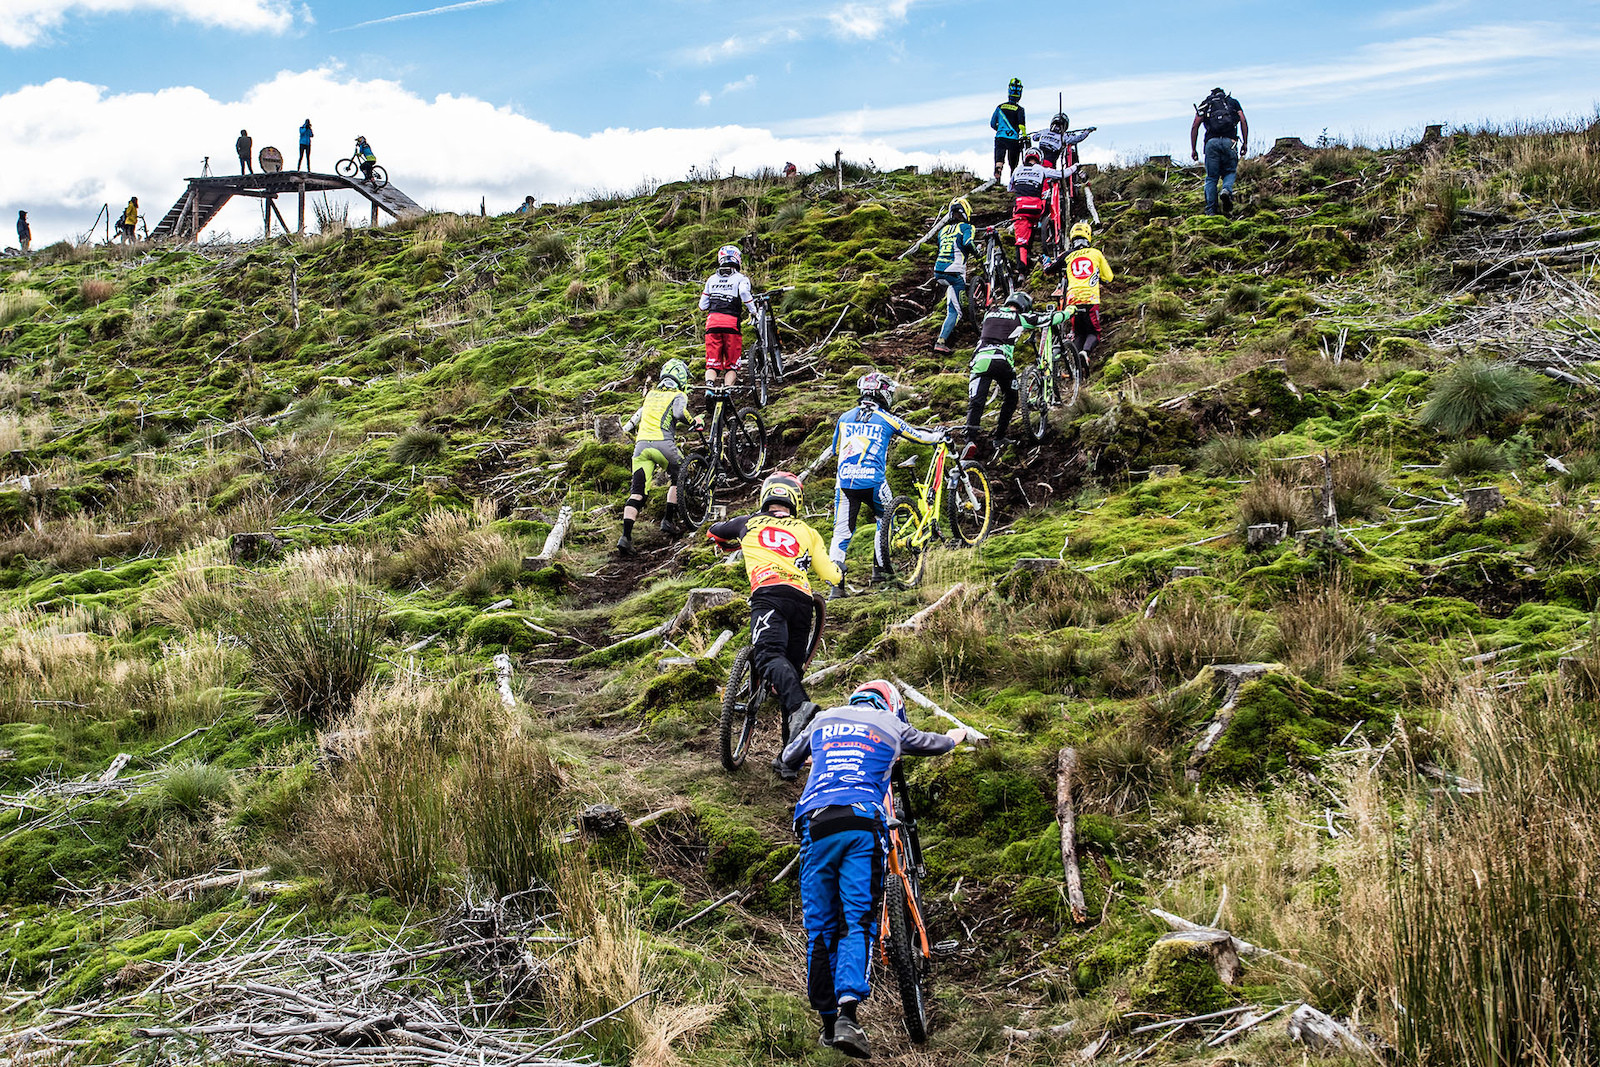 Once out the uplift the riders have a short uphill push to reach the starting platform.